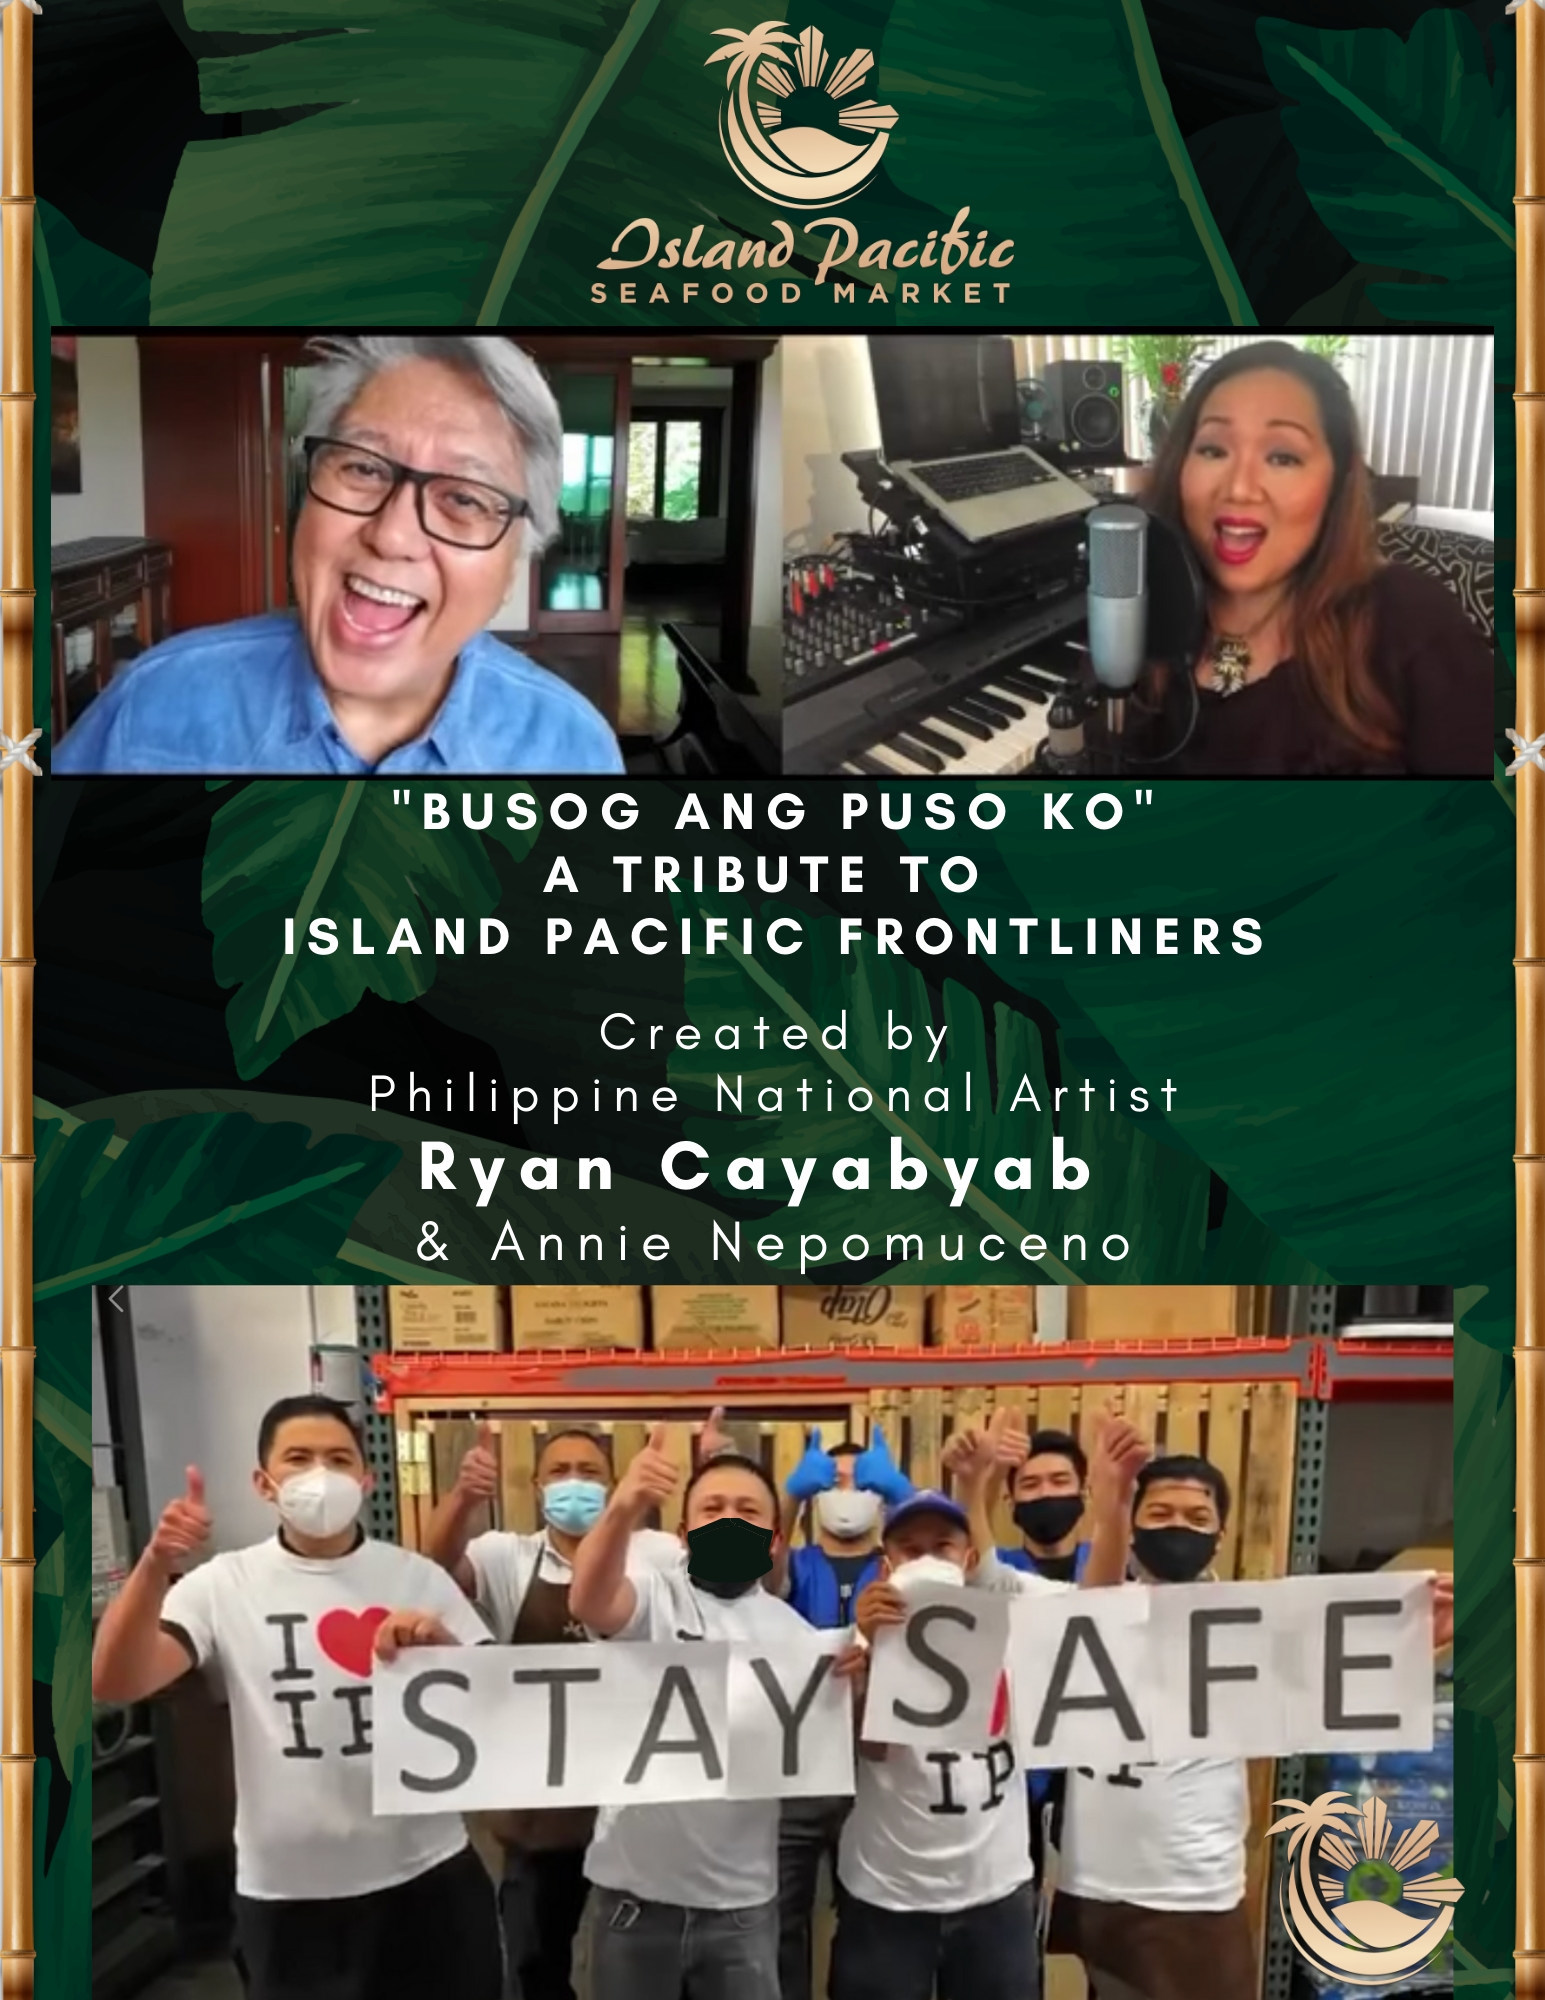 Philippine National Artist Ryan Cayabyab And Annie Nepomuceno Pay Tribute To Island Pacific Frontliners